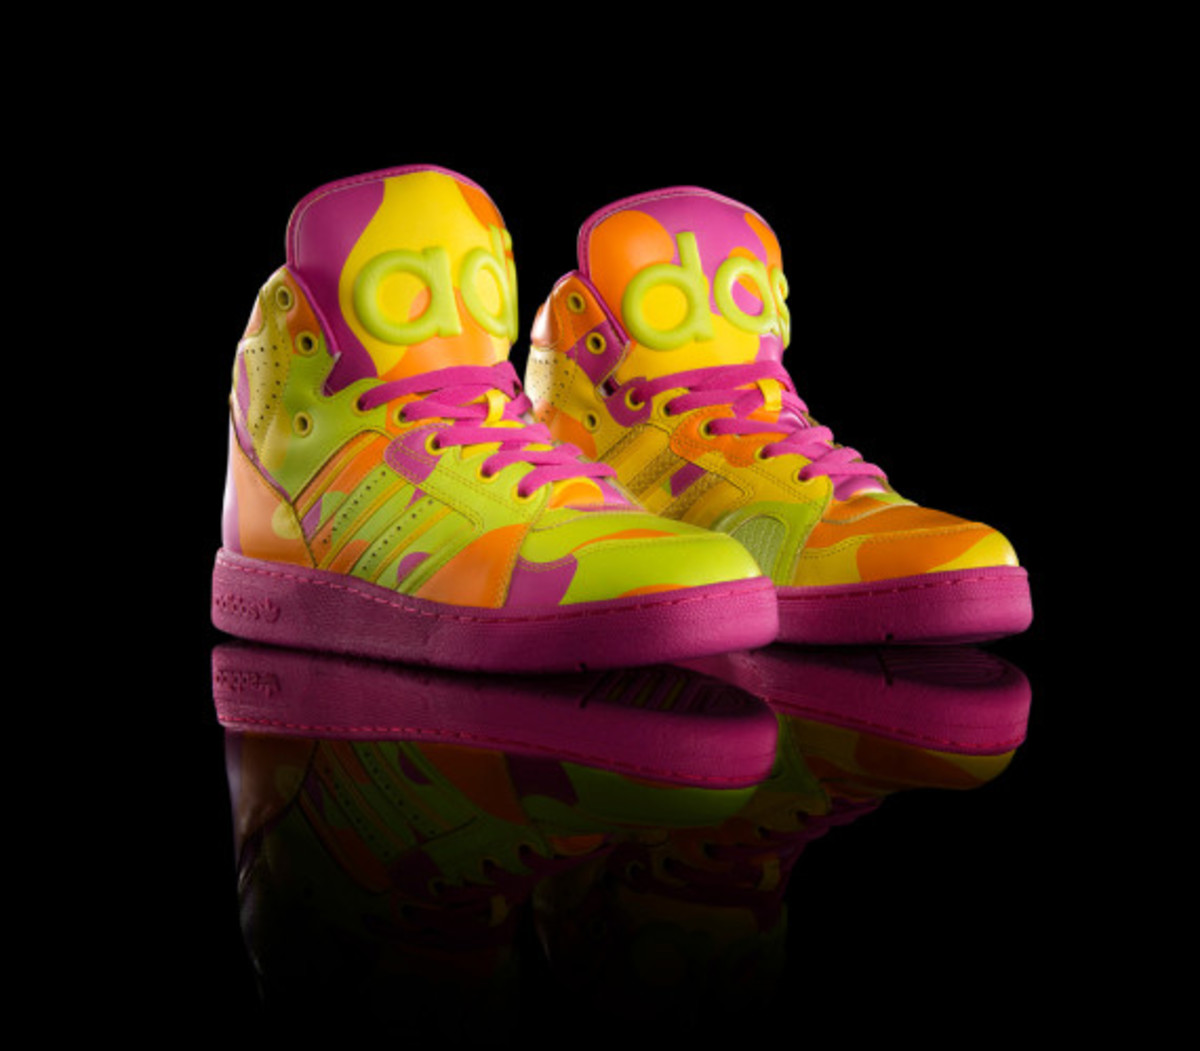 adidas-originals-by-jeremy-scott-fall-winter-2013-footwear-collection-14